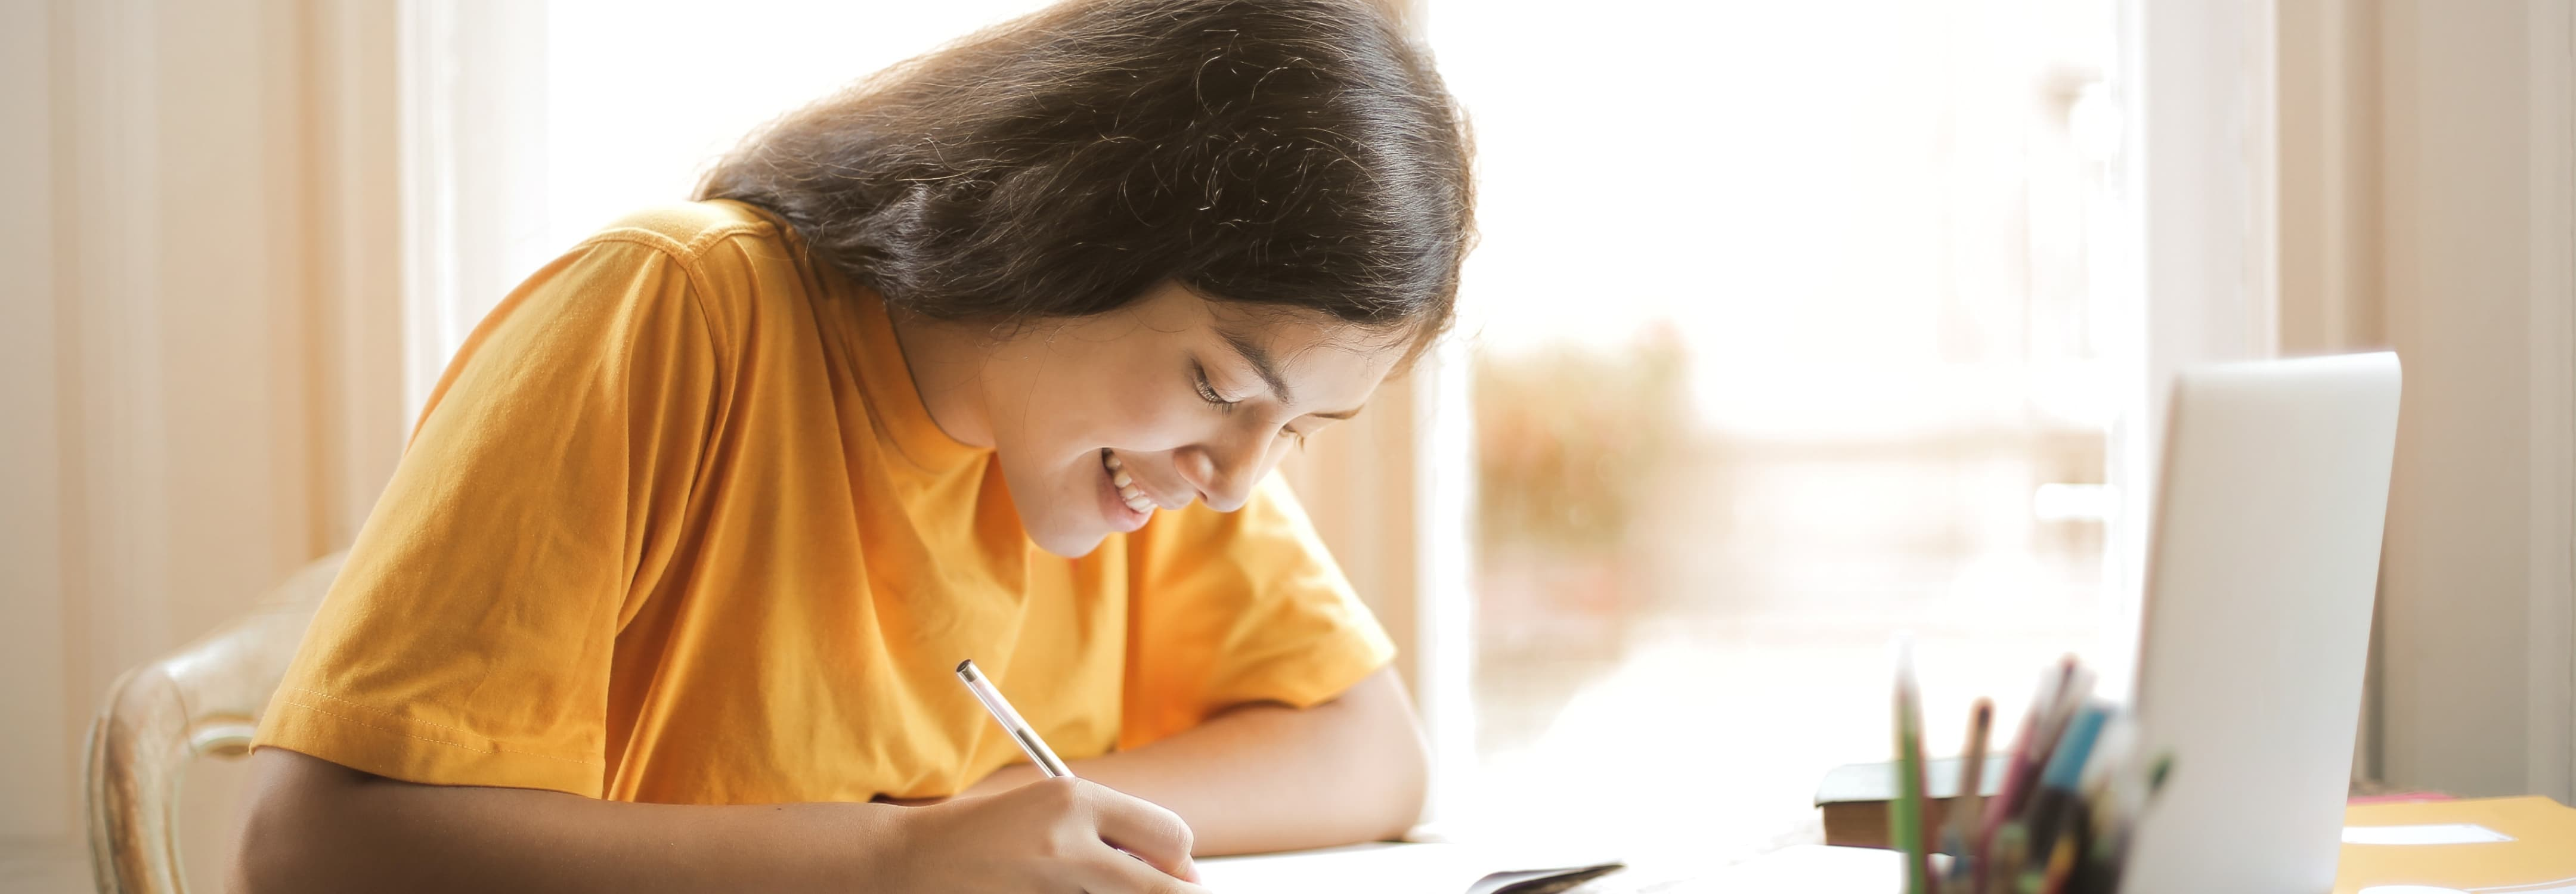 An image of a woman doing homework with a laptop